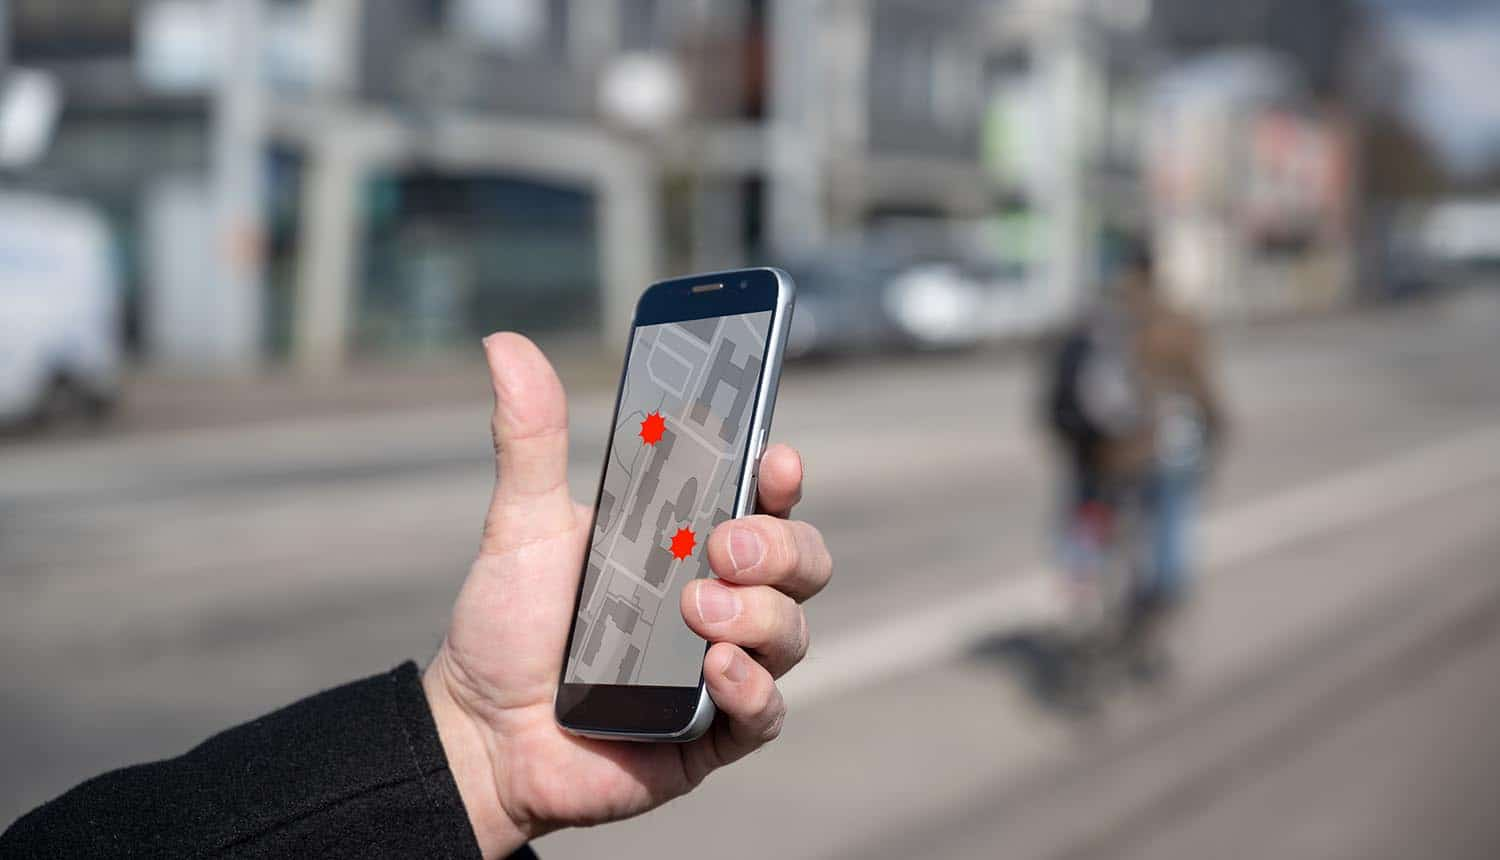 Man using tracking app on mobile showing experts questioning the usefulness of contact tracing apps